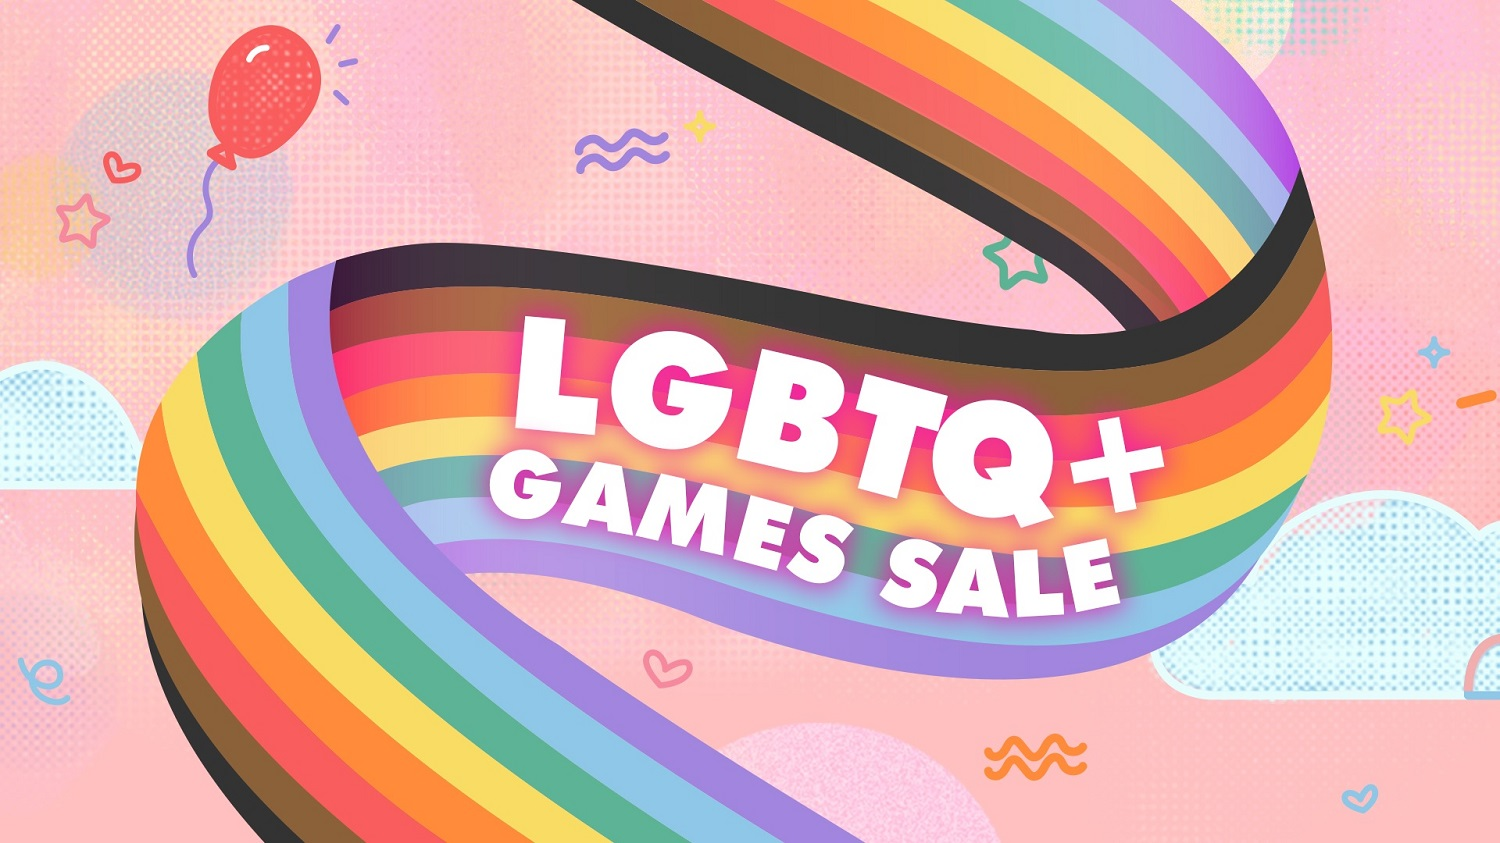 photo of You can save up to 90% on games in the Steam LGBTQ+ Games Sale image